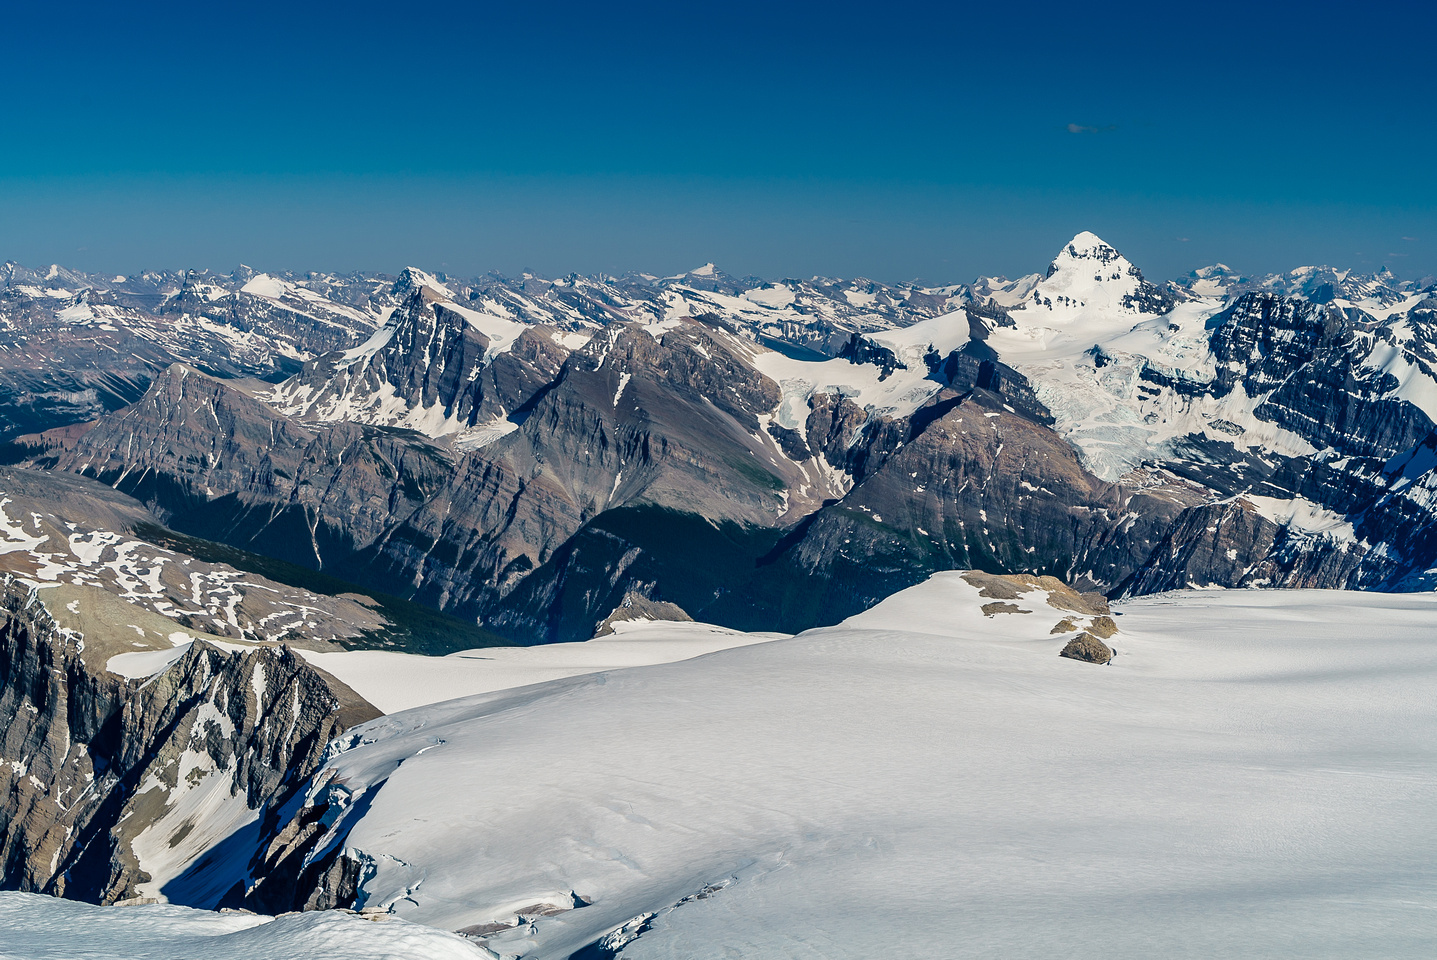 Mount Forbes with Outram at left and Hector visible at center distance.